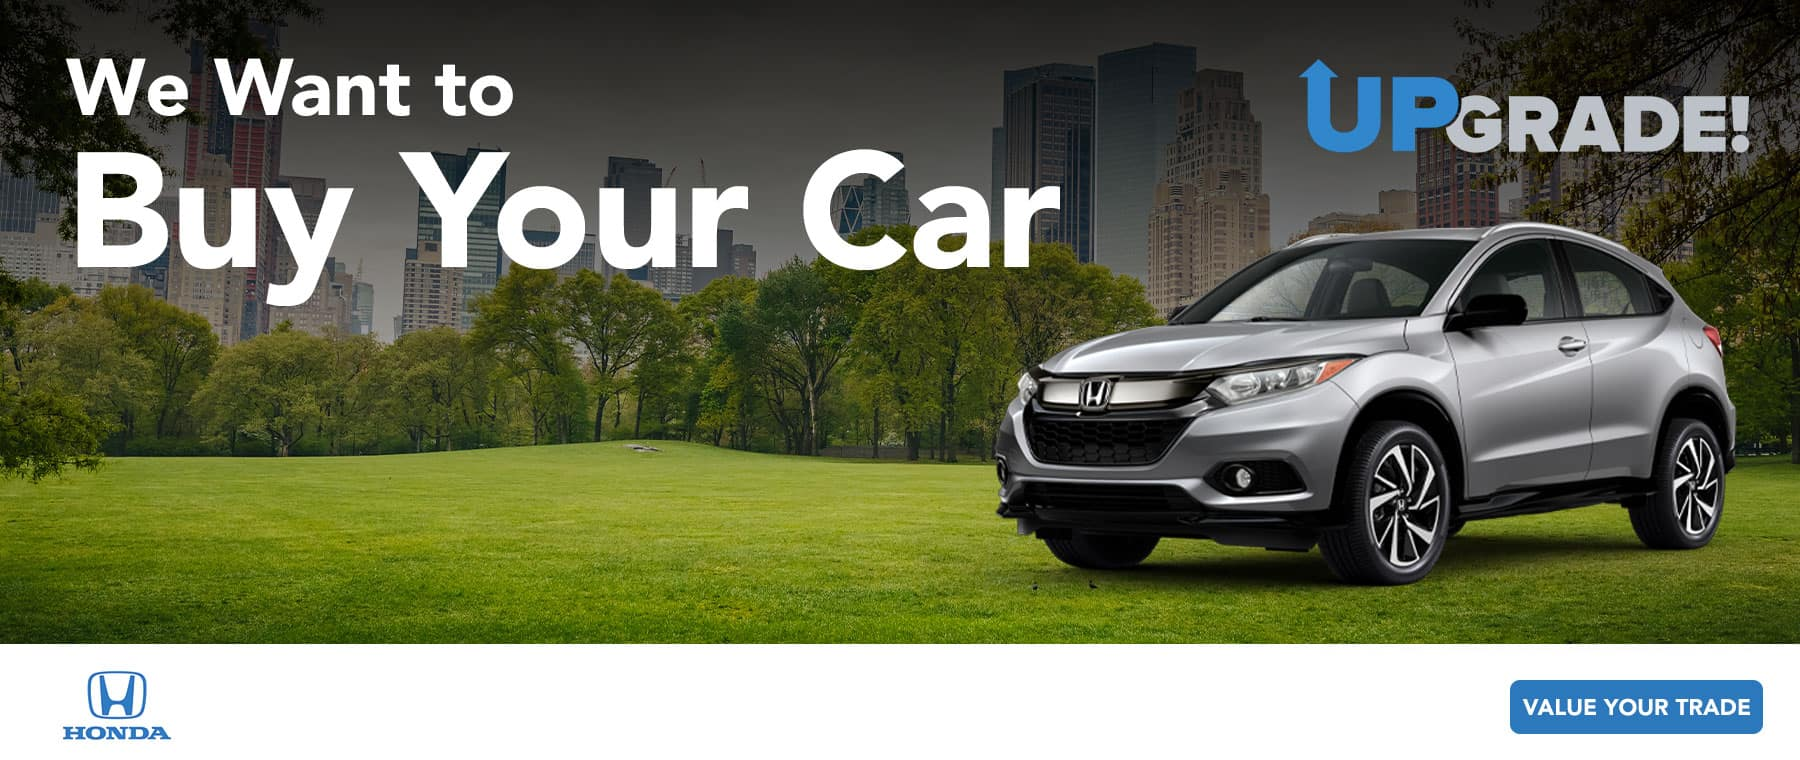 may2021-we-want-to-buy-your-car-SHEN_SL_1800x760